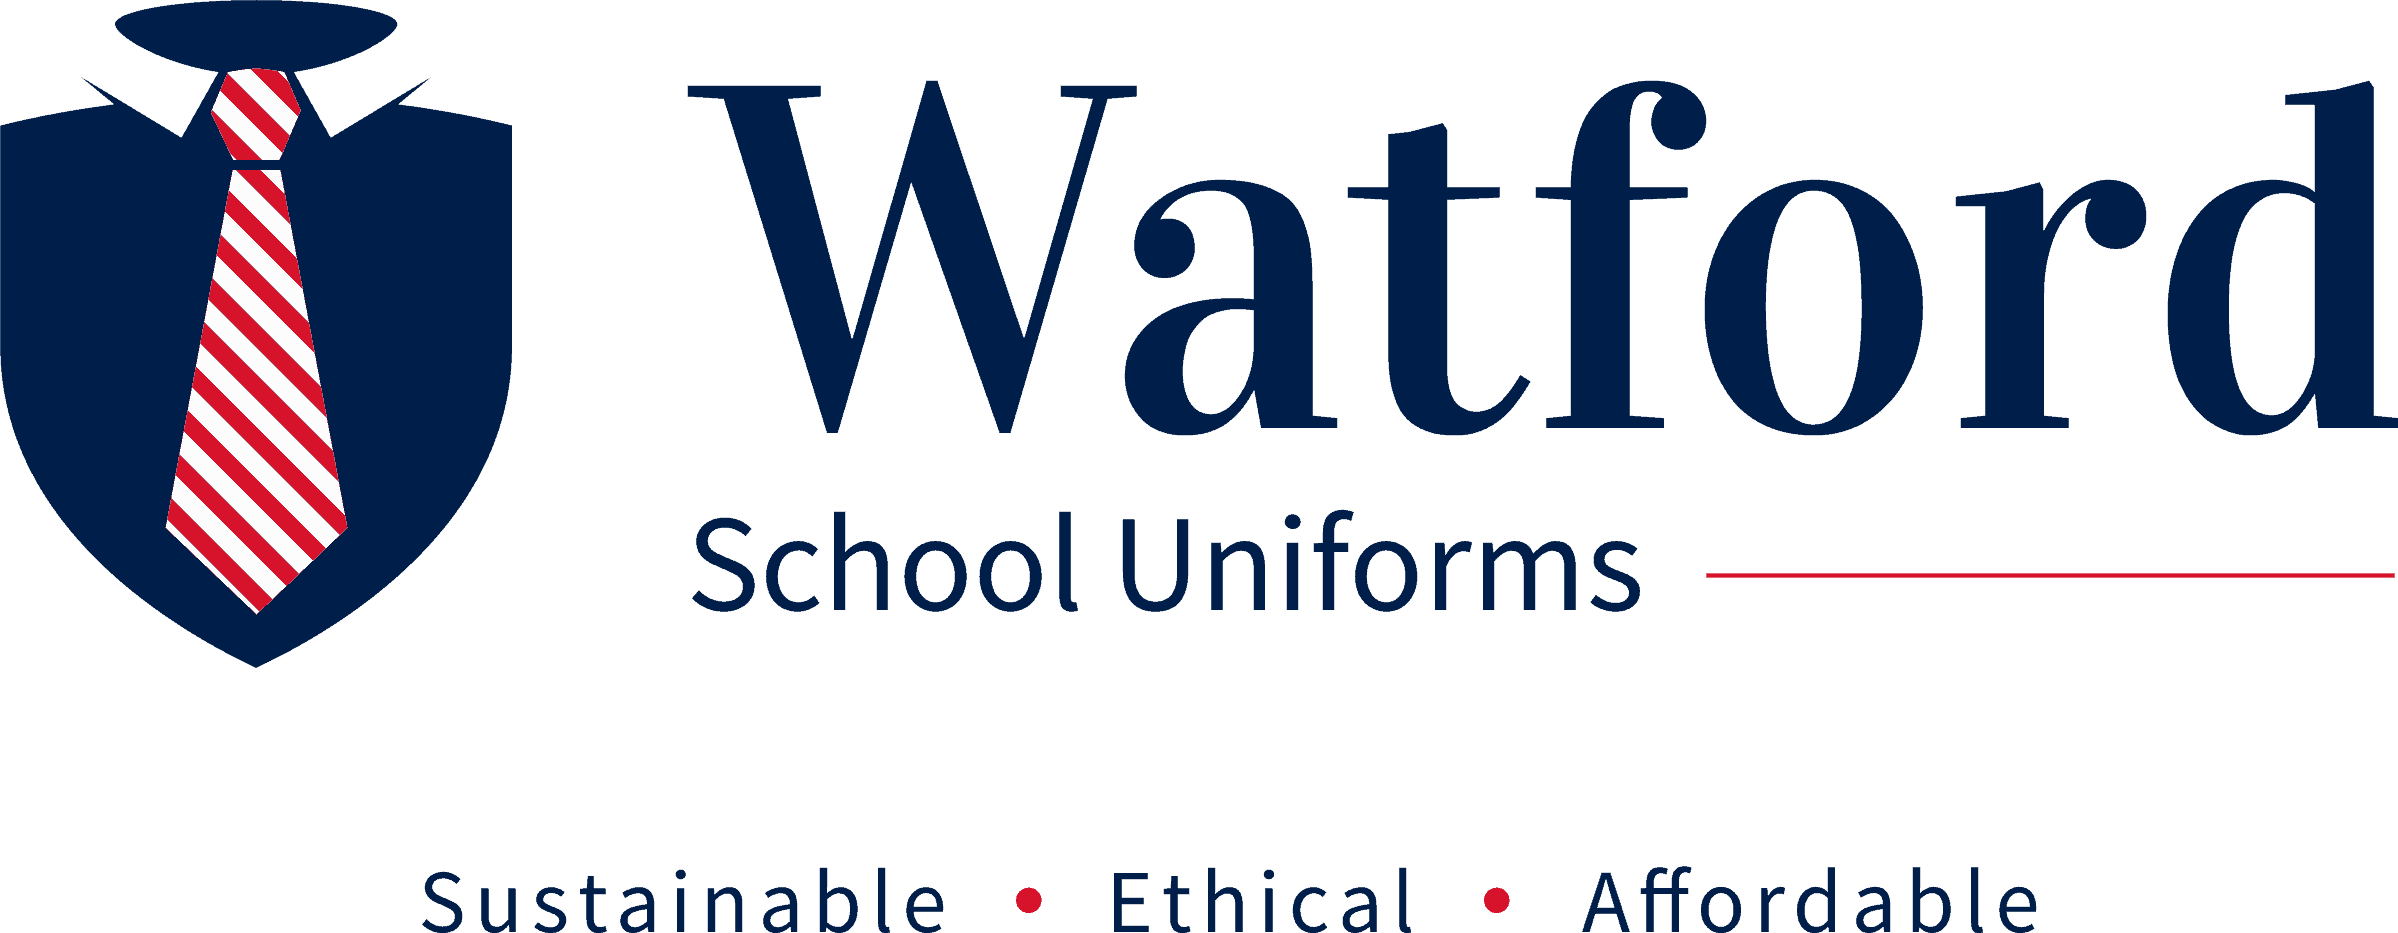 Watford School Uniforms